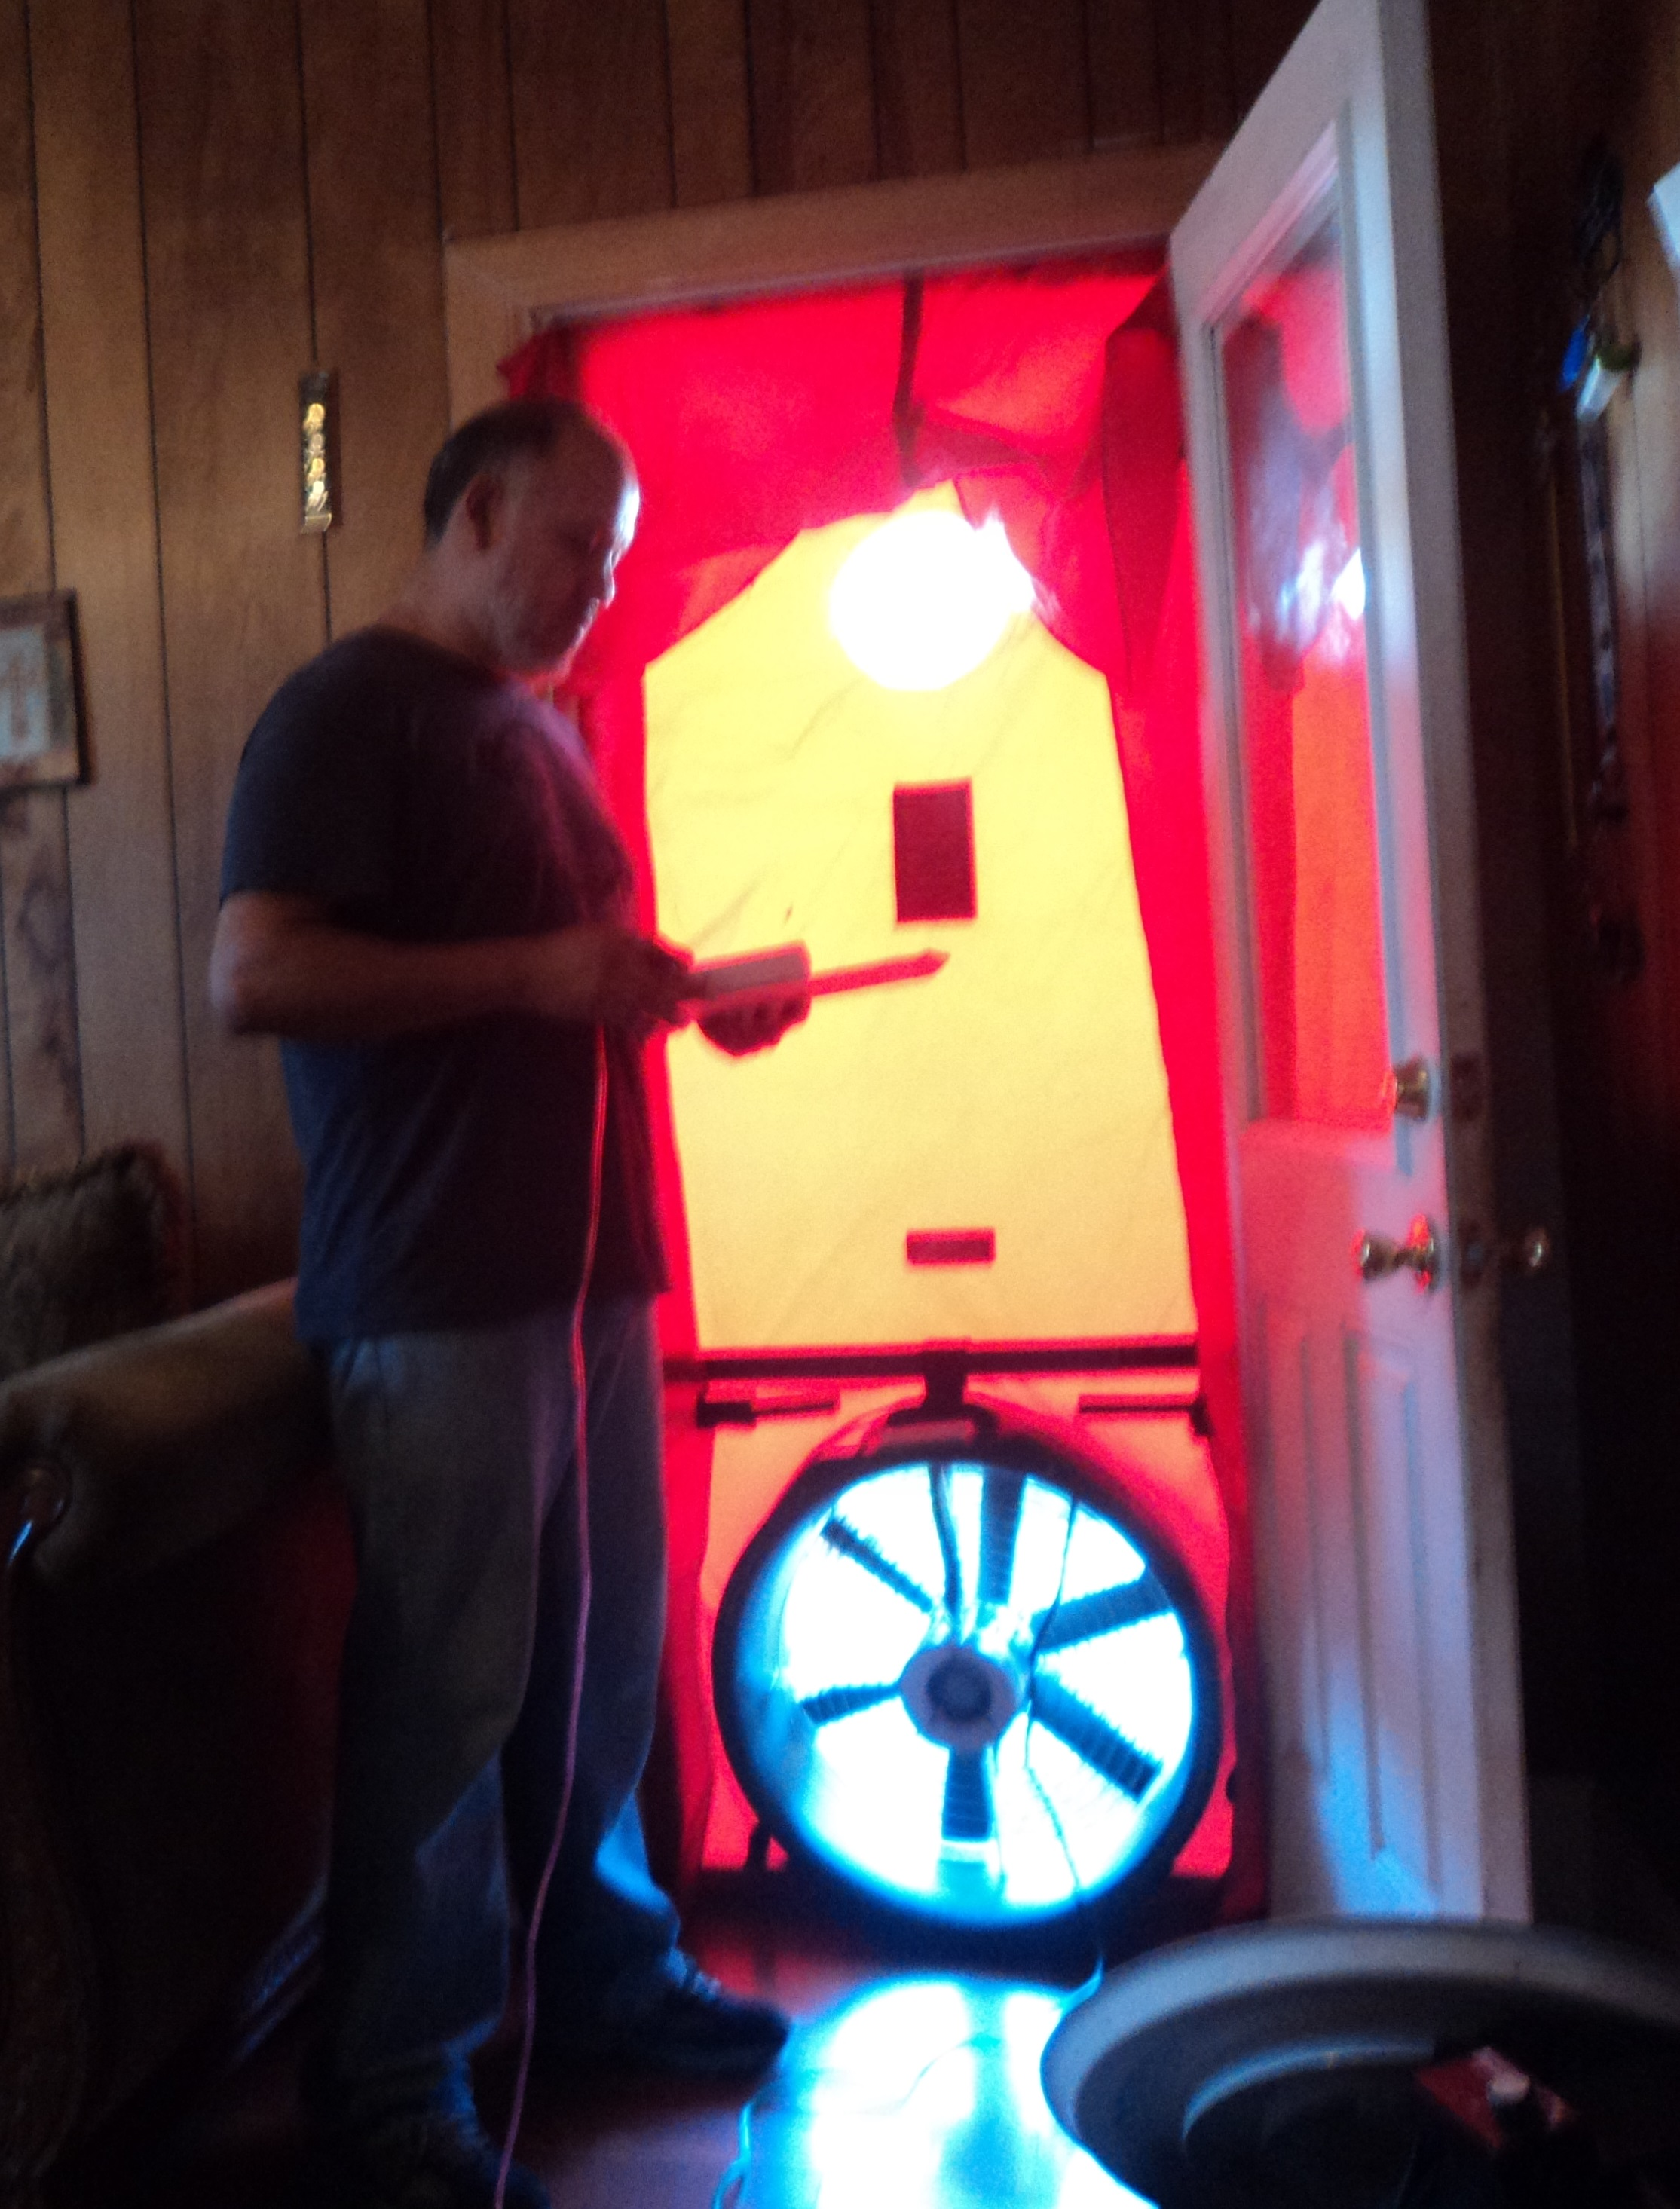 Blower Door Test 1 - WAP PY 16